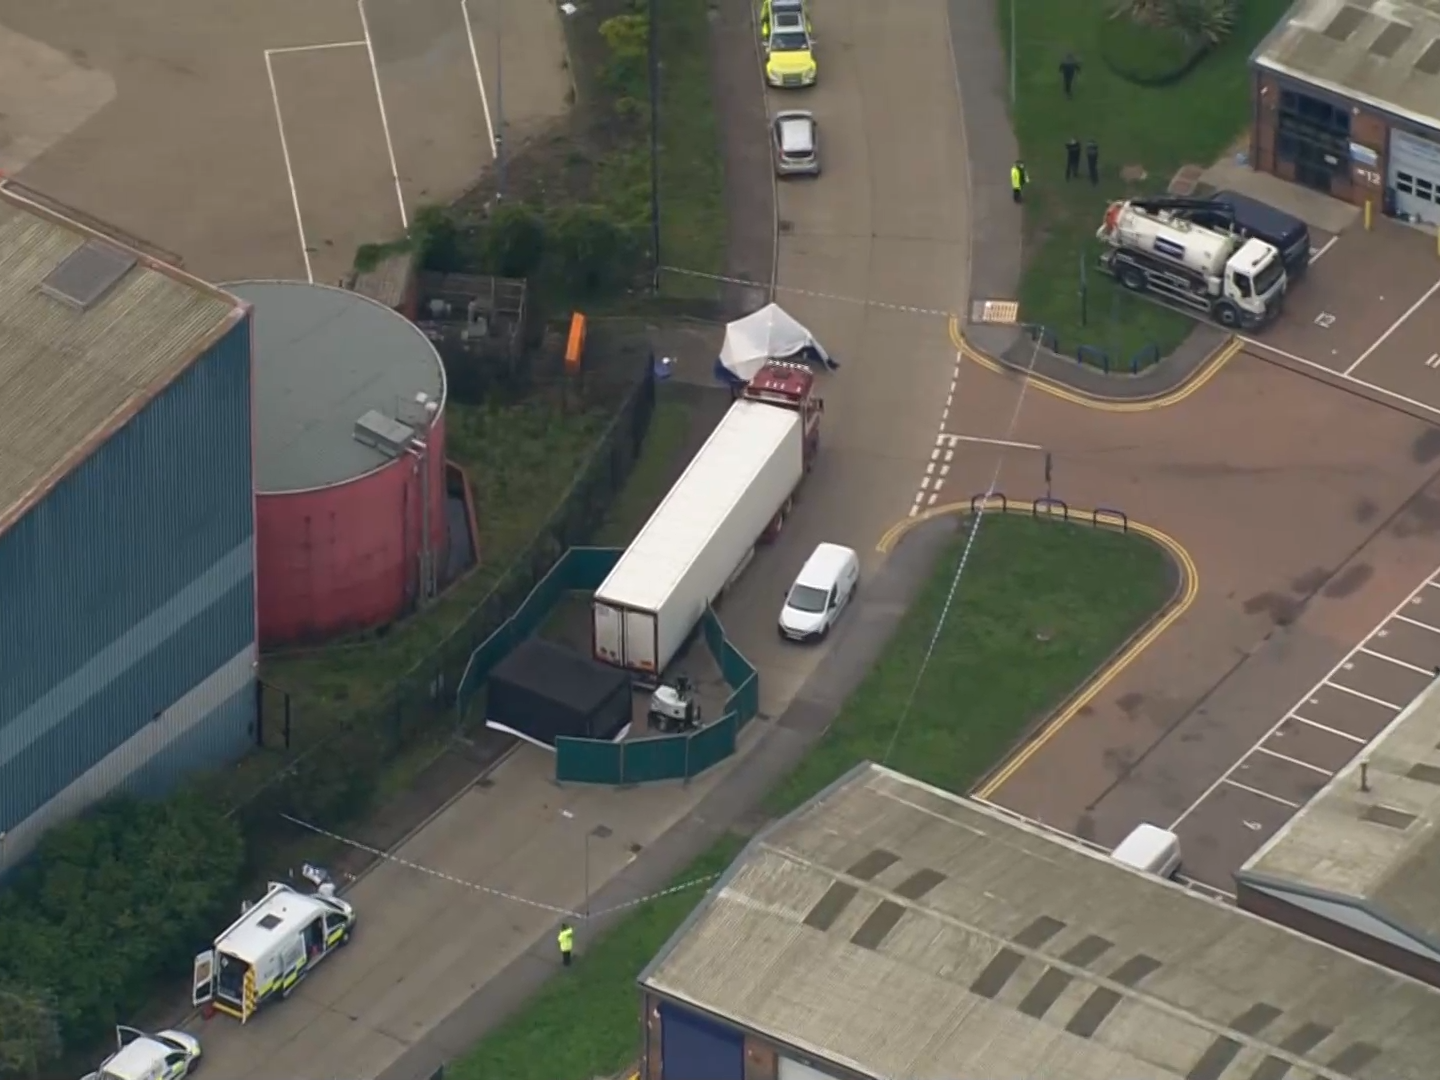 39 bodies found in a lorry container in Essex